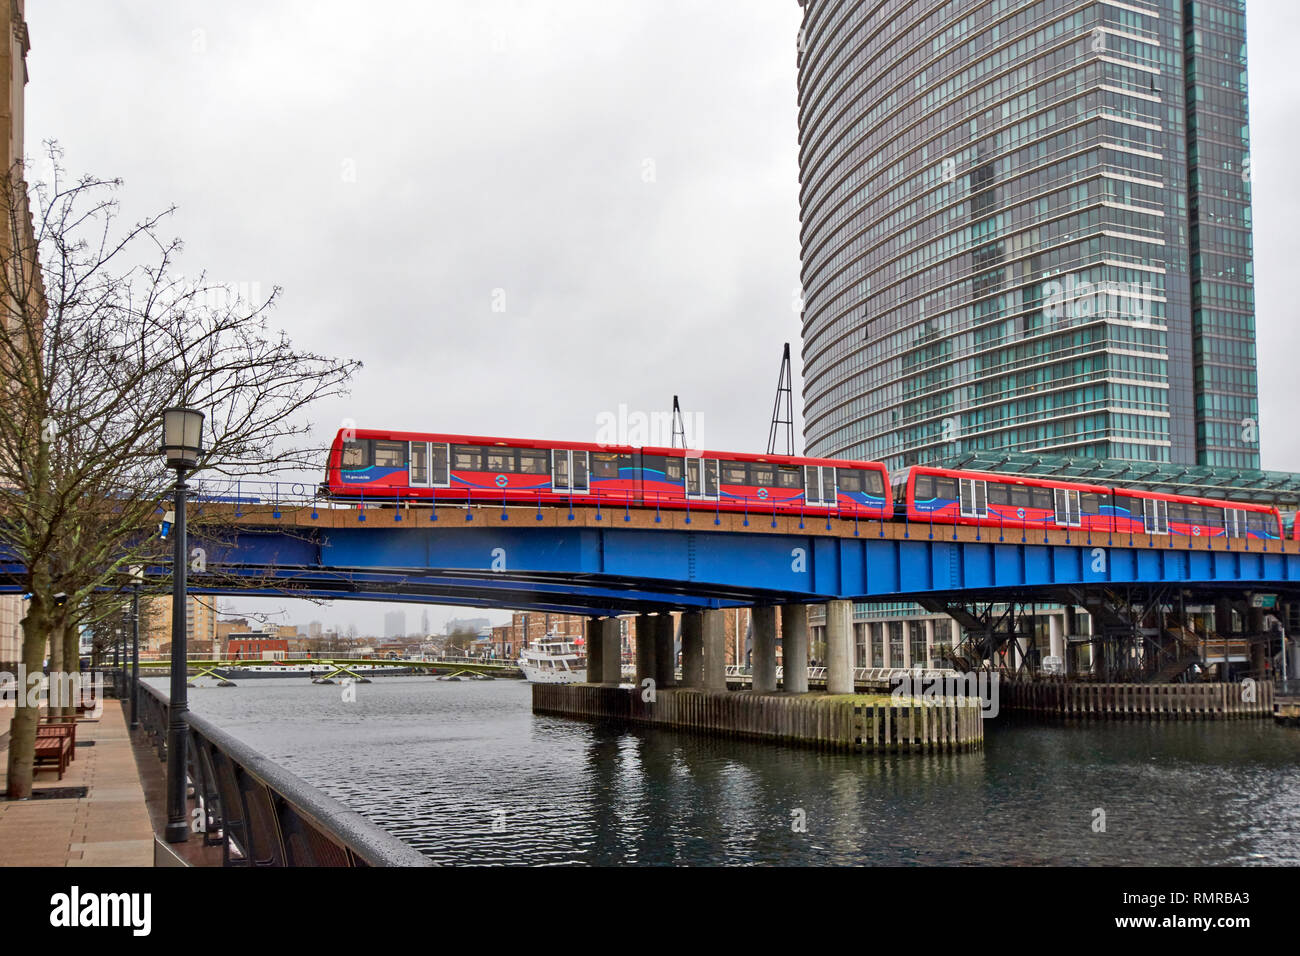 LONDON CANARY WHARF TFL RED TRAIN CROSSING THE NORTH DOCK - Stock Image